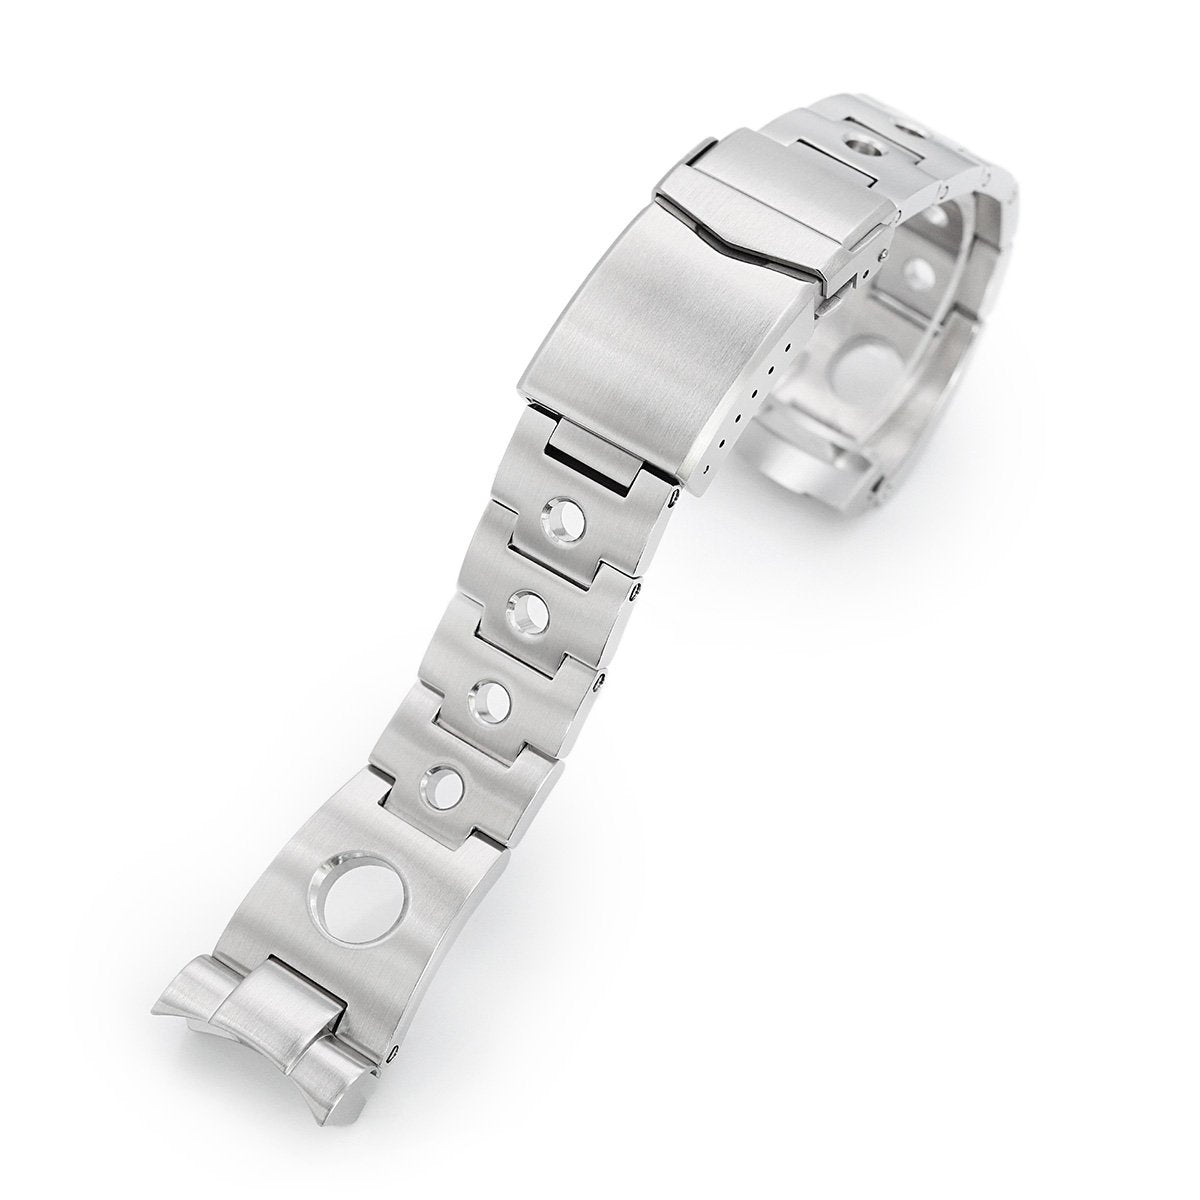 Seiko Skx007 Mods Rollball Curved End Watch Band Upgrade Strapcode